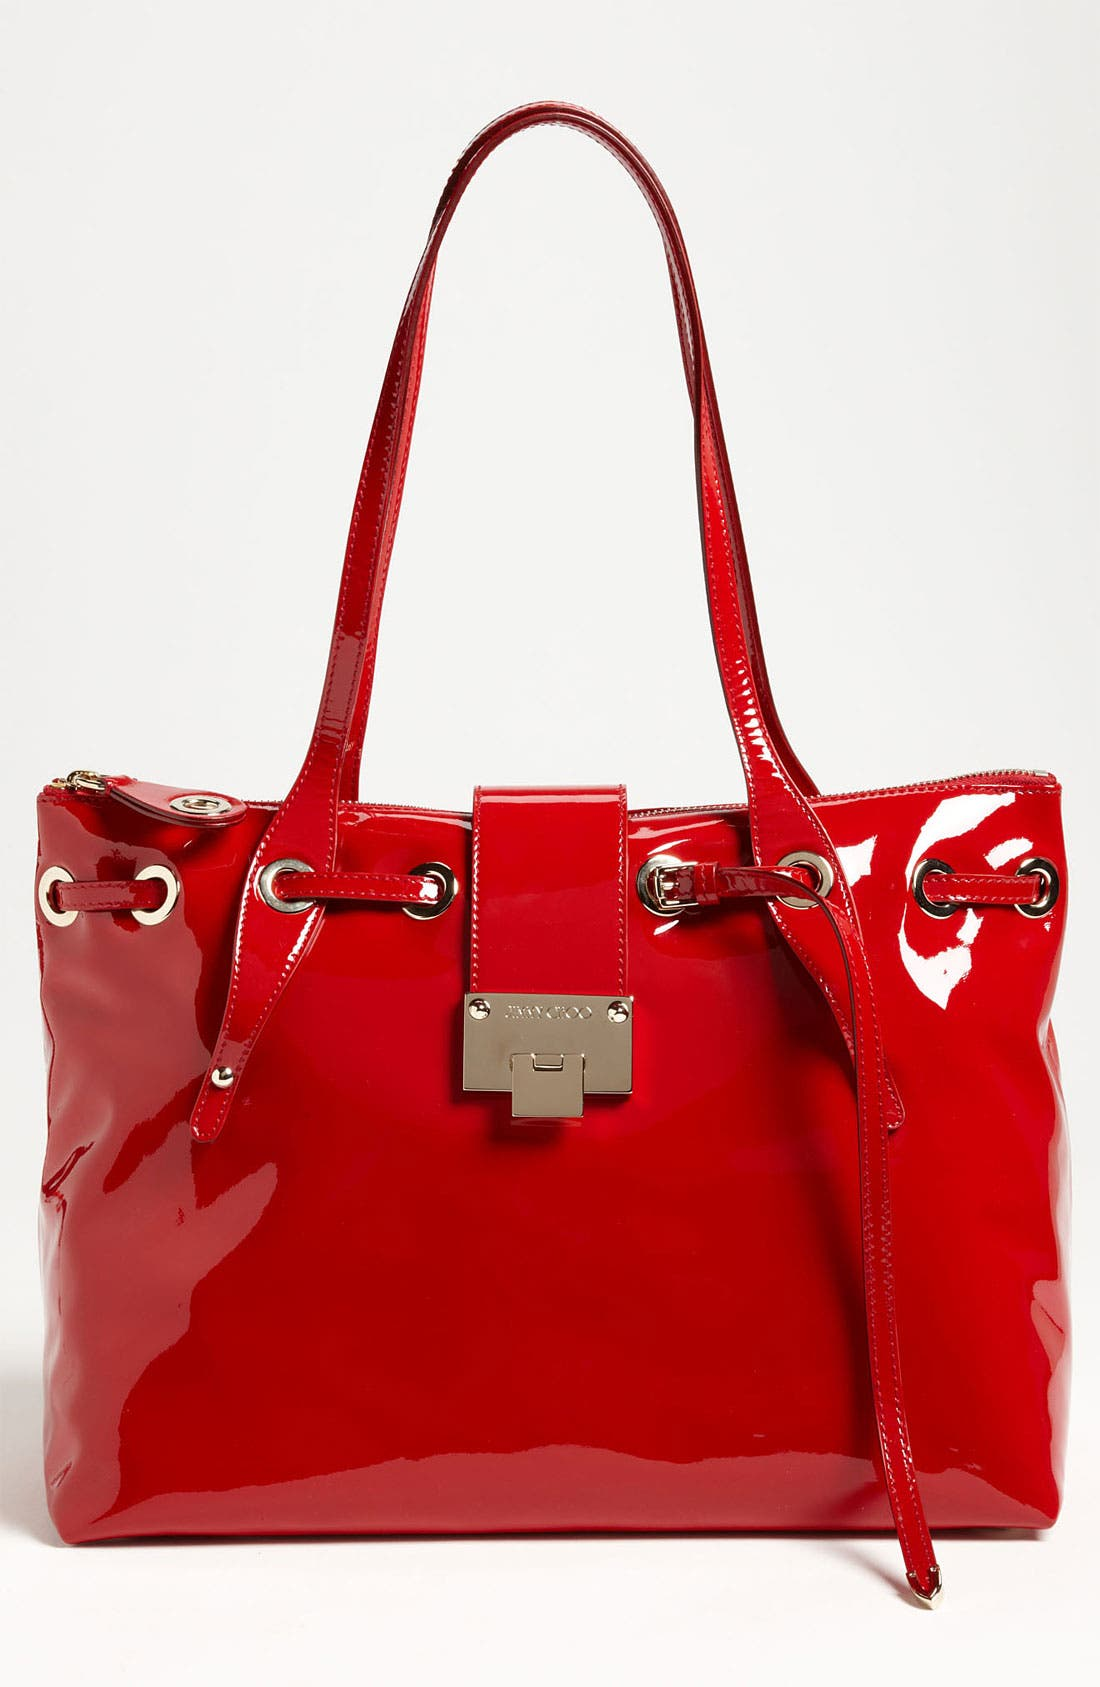 Main Image - Jimmy Choo 'Rhea' Patent Leather Tote